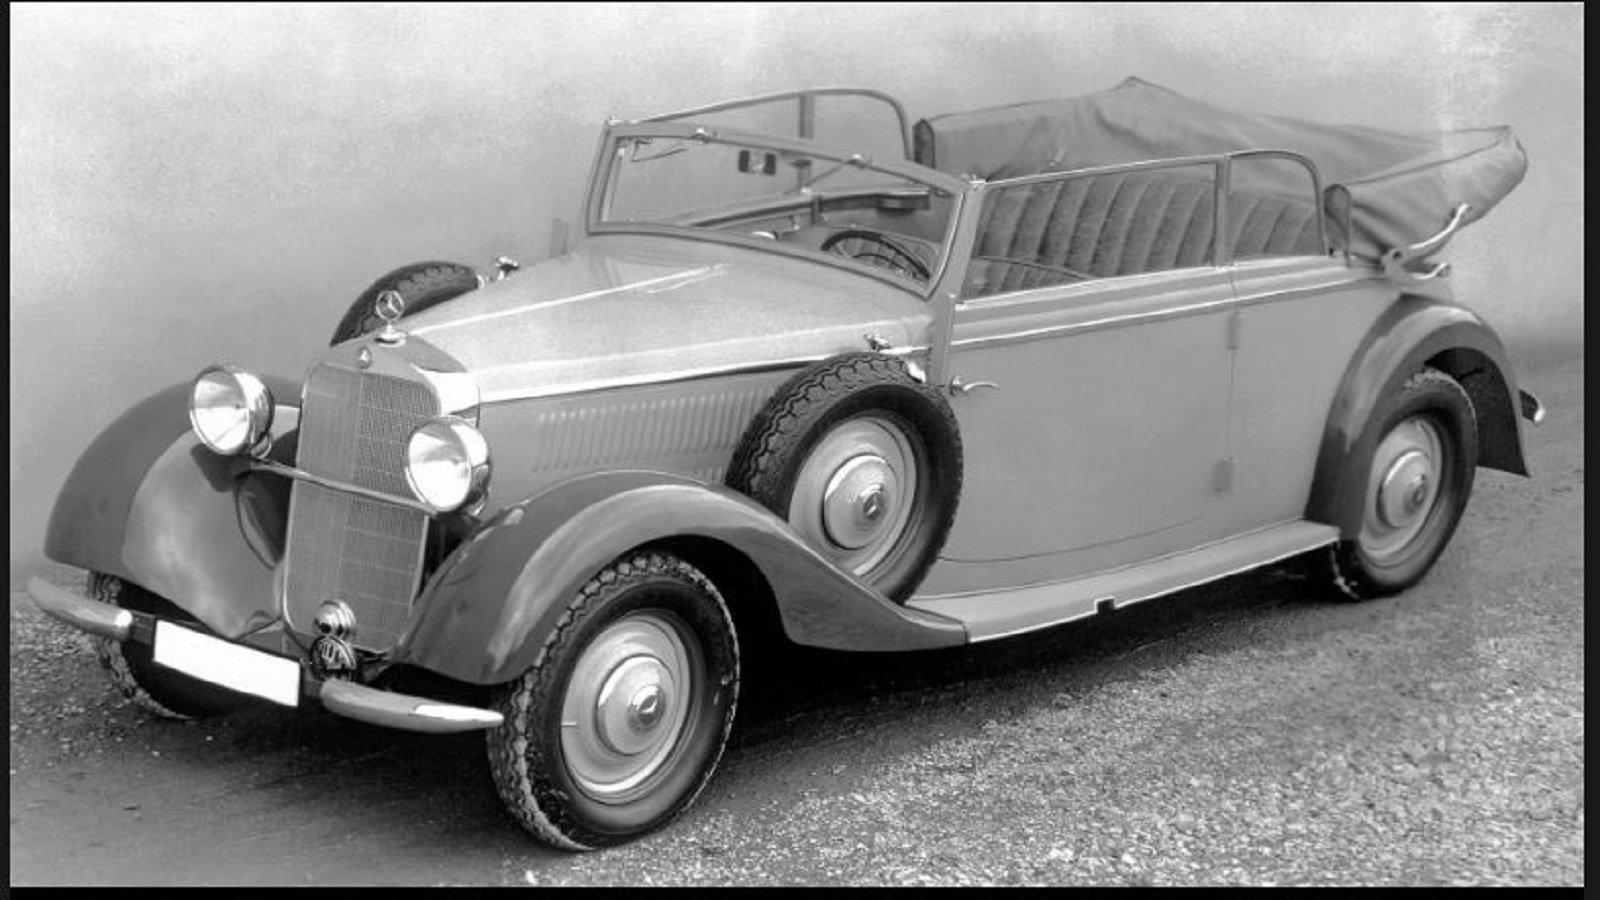 First Diesel Powered Passenger Automobile